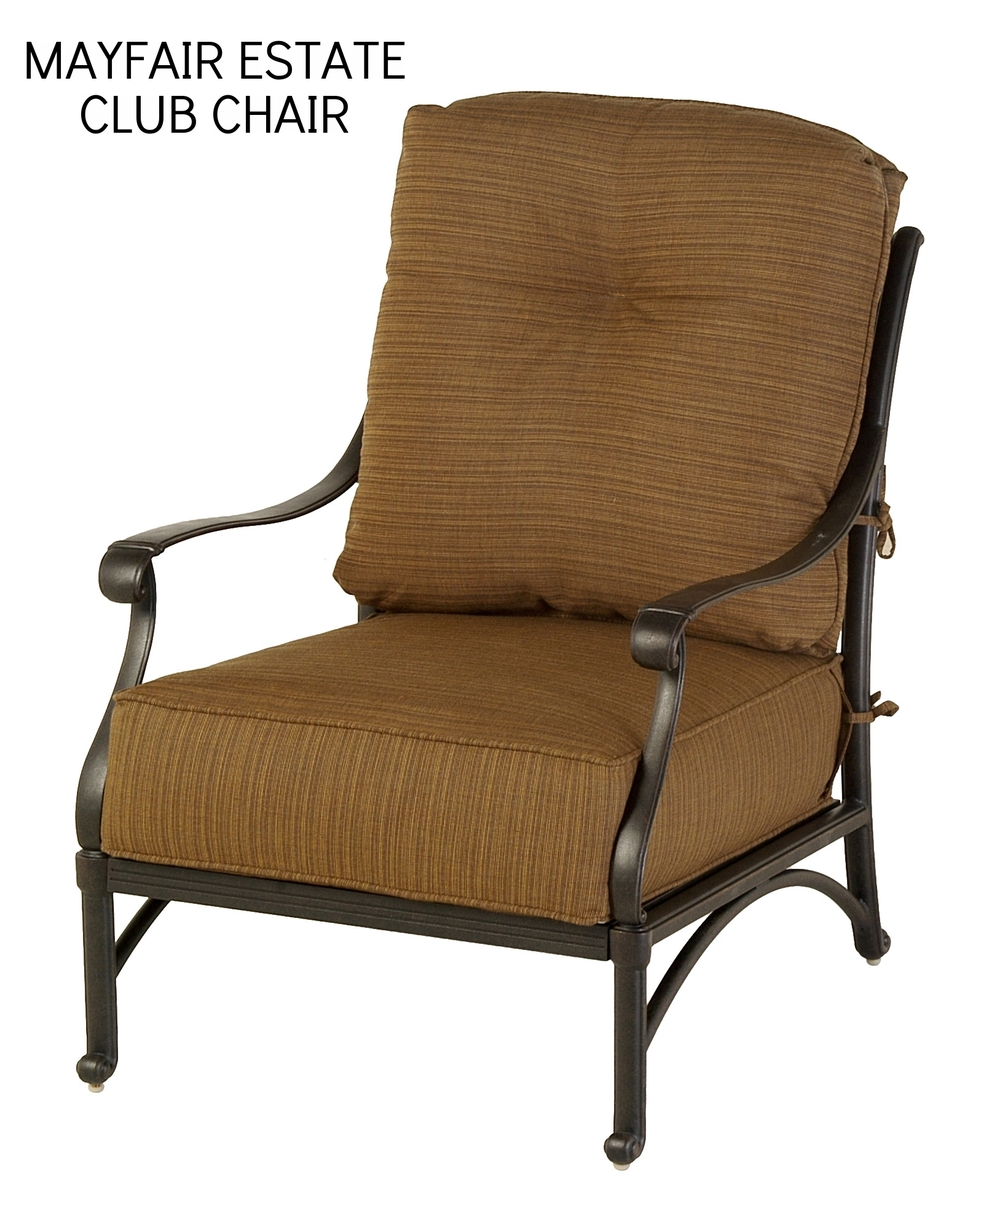 Mayfair Chair.jpg